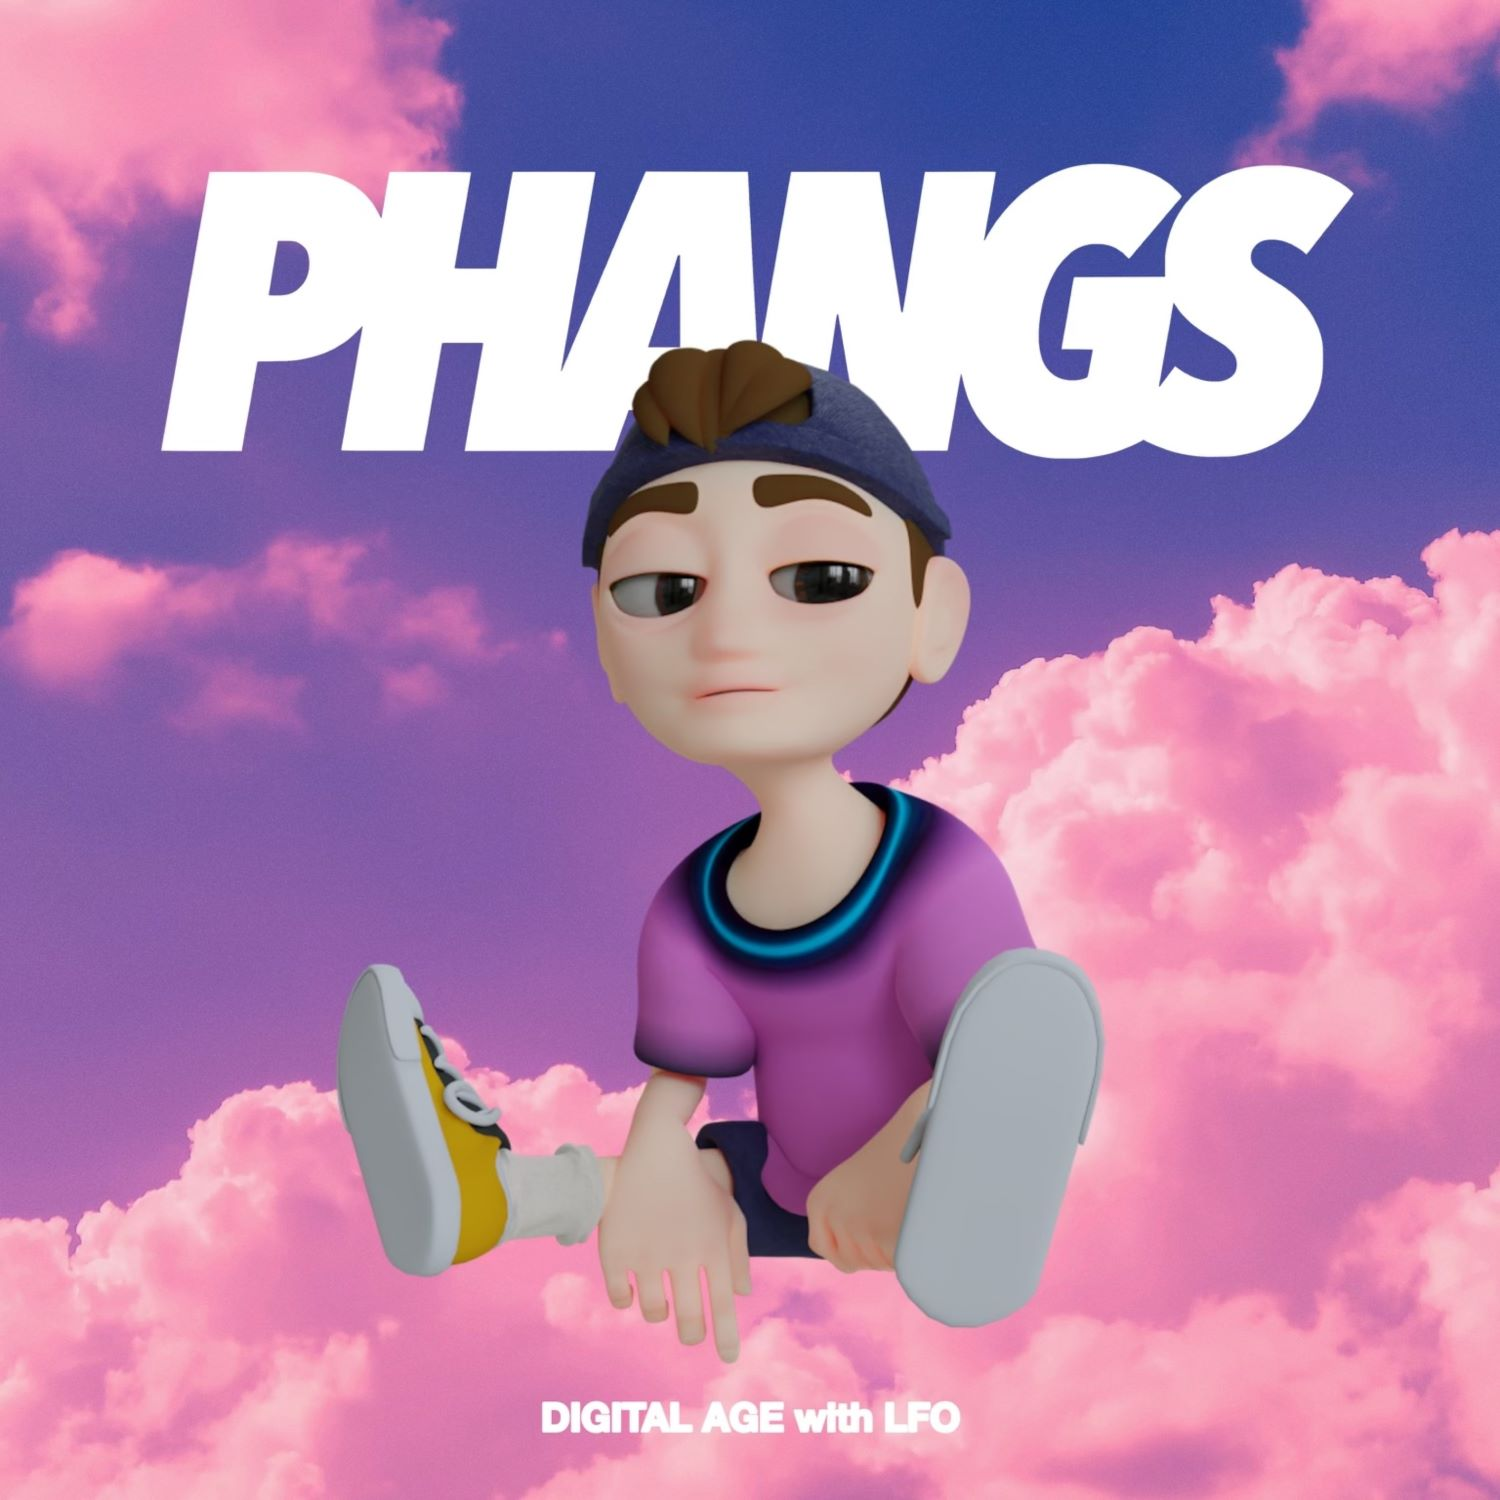 PHANGS DIGITAL AGE COVER IN AN ARTICLE FOR POP NEW MUSIC FRIDAY